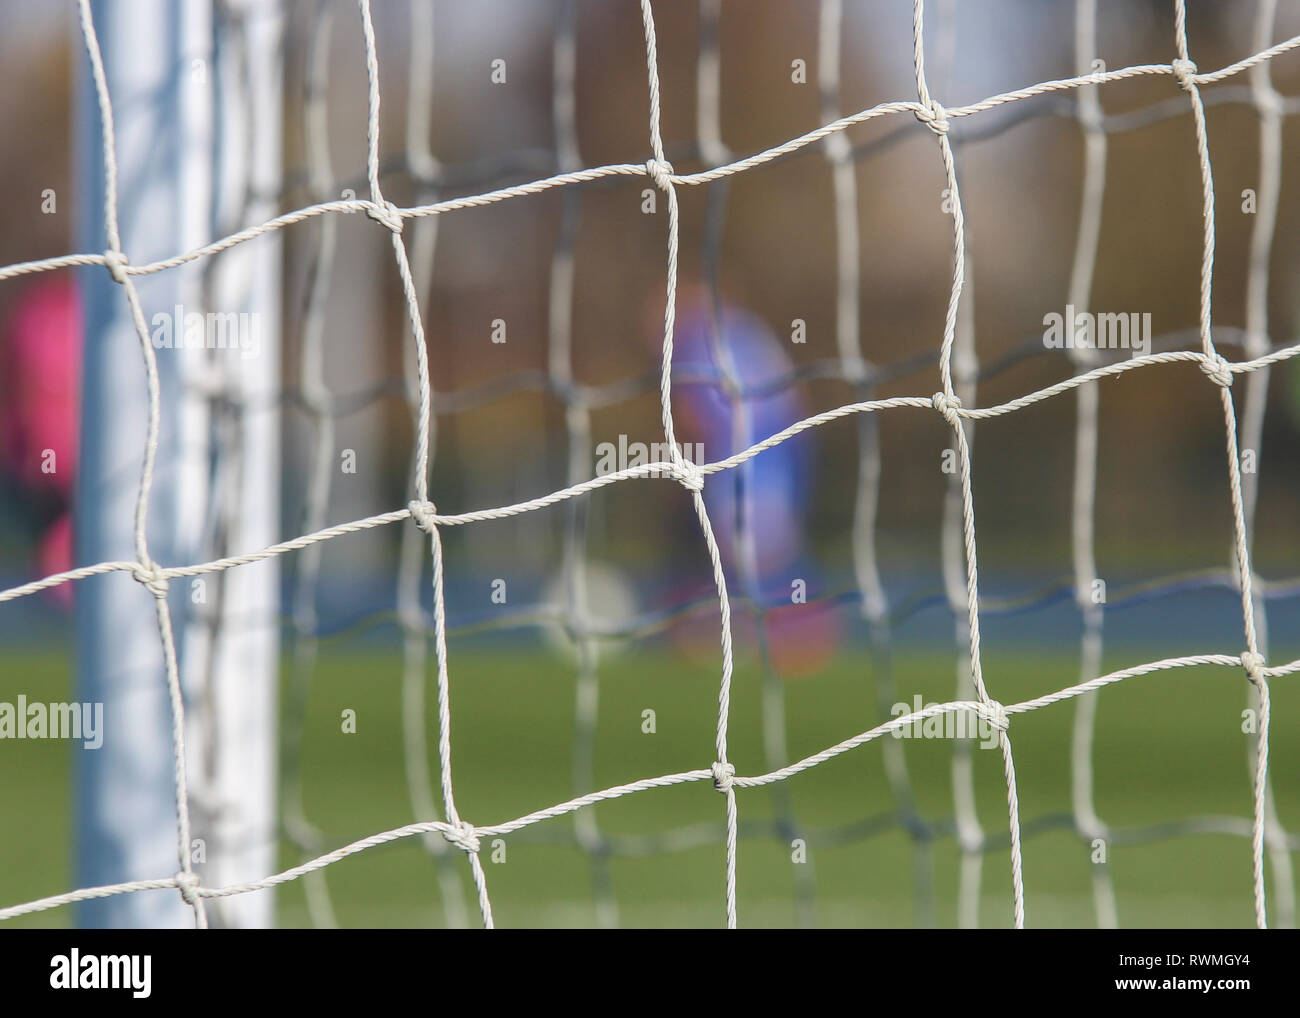 Football player with ball through net of the goal. - Stock Image